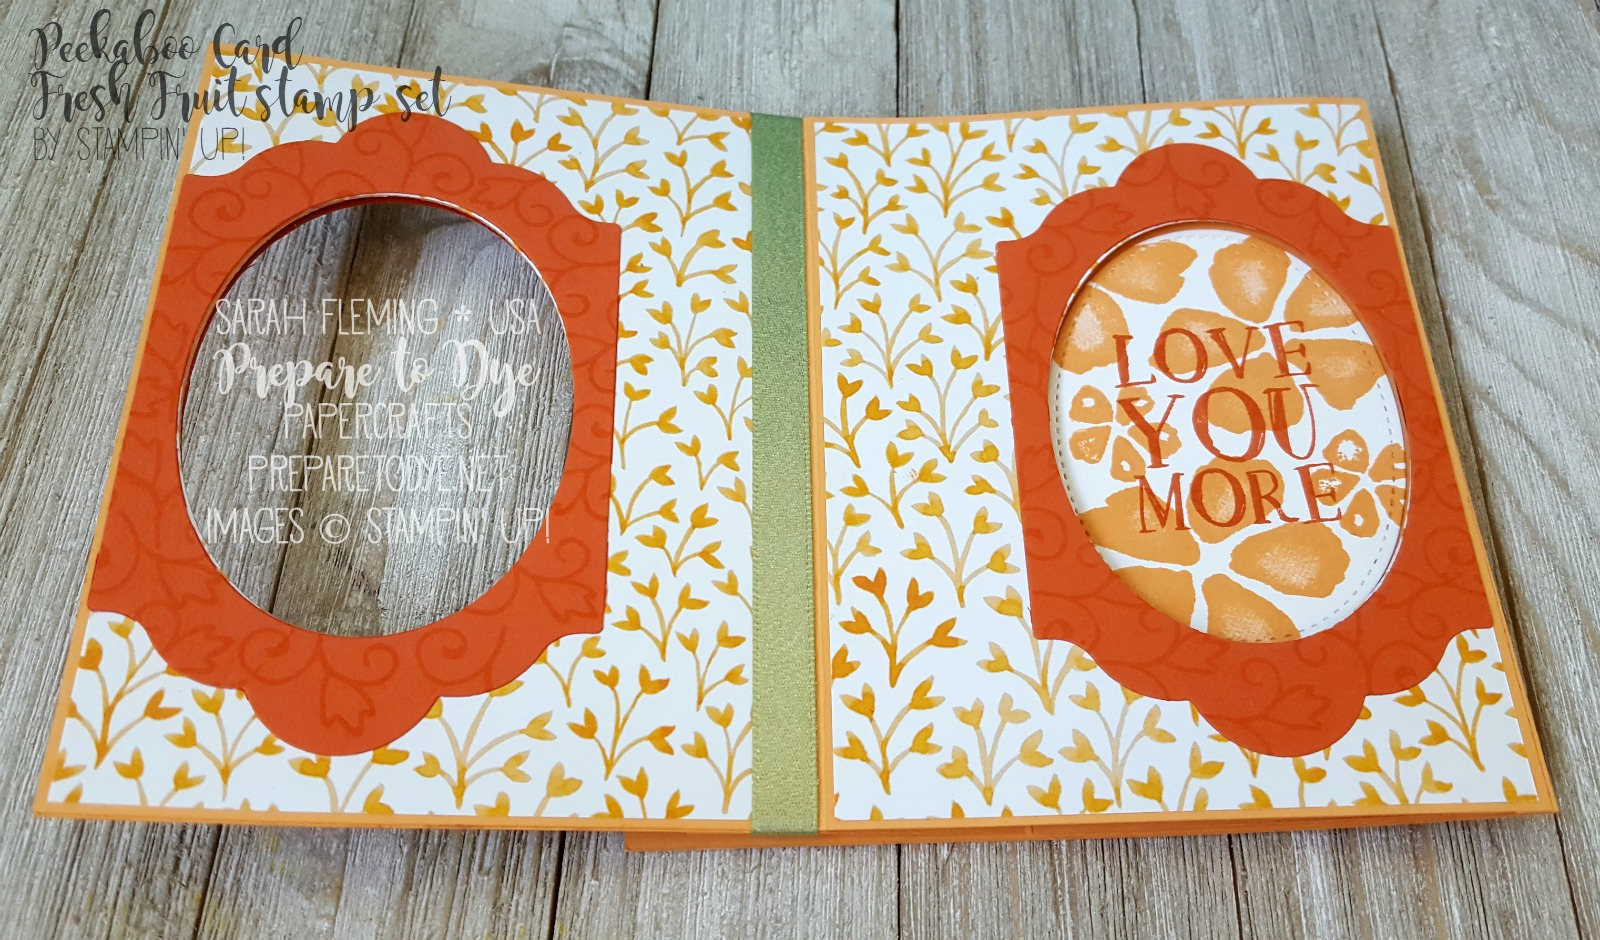 Stampin' Up! Fresh Fruit stamp set & Fruit Stand paper are retiring soon - Splitcoaststampers Creative Crew - Peek-a-Boo Card - Sarah Fleming - Prepare to Dye Papercrafts